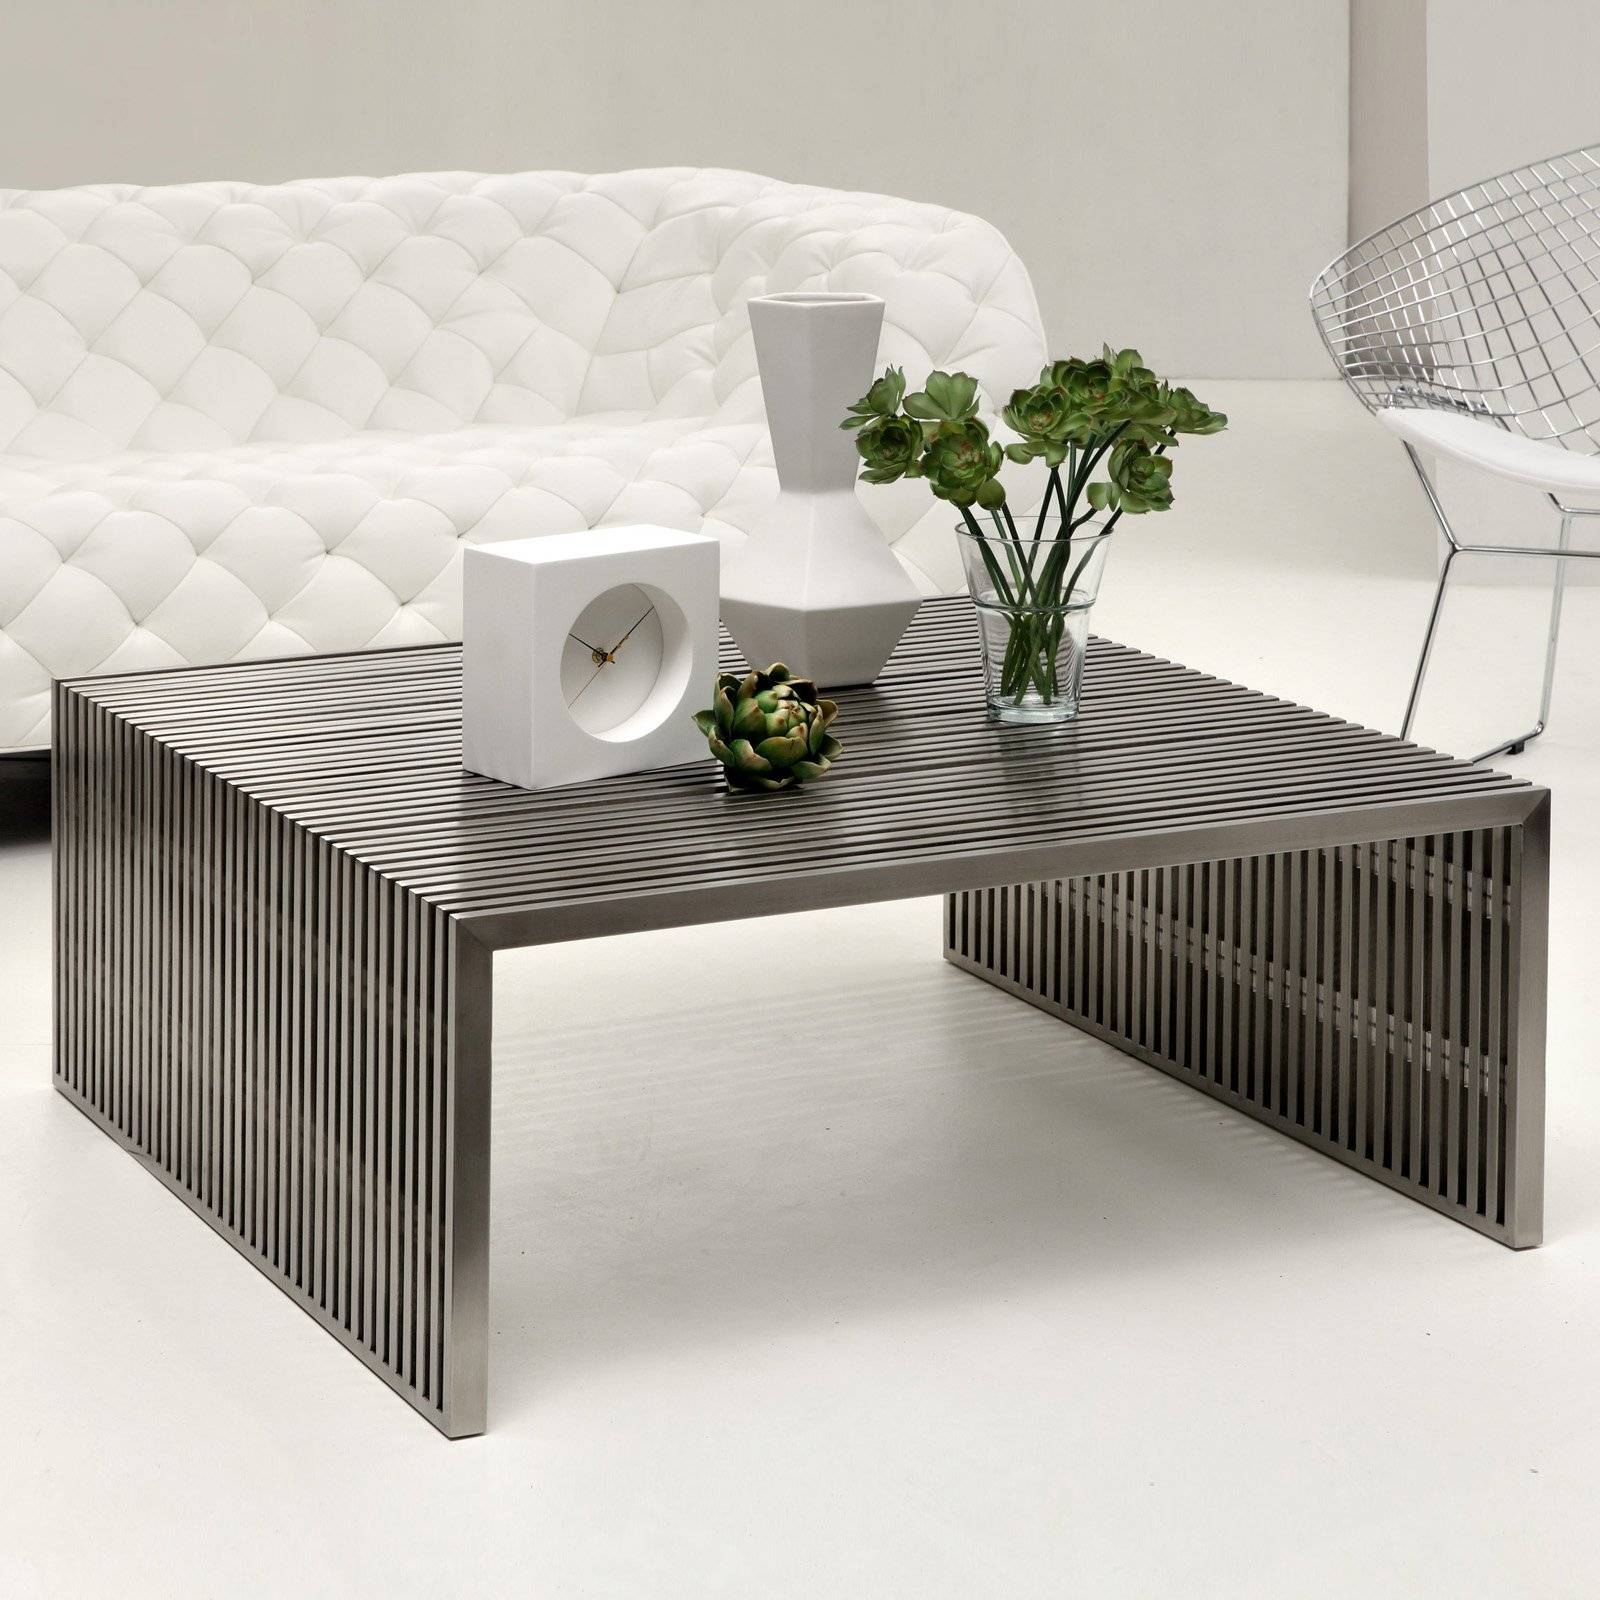 Zuo Modern Square Coffee Table – Coffee Tables At Hayneedle Regarding Square Coffee Tables (View 30 of 30)